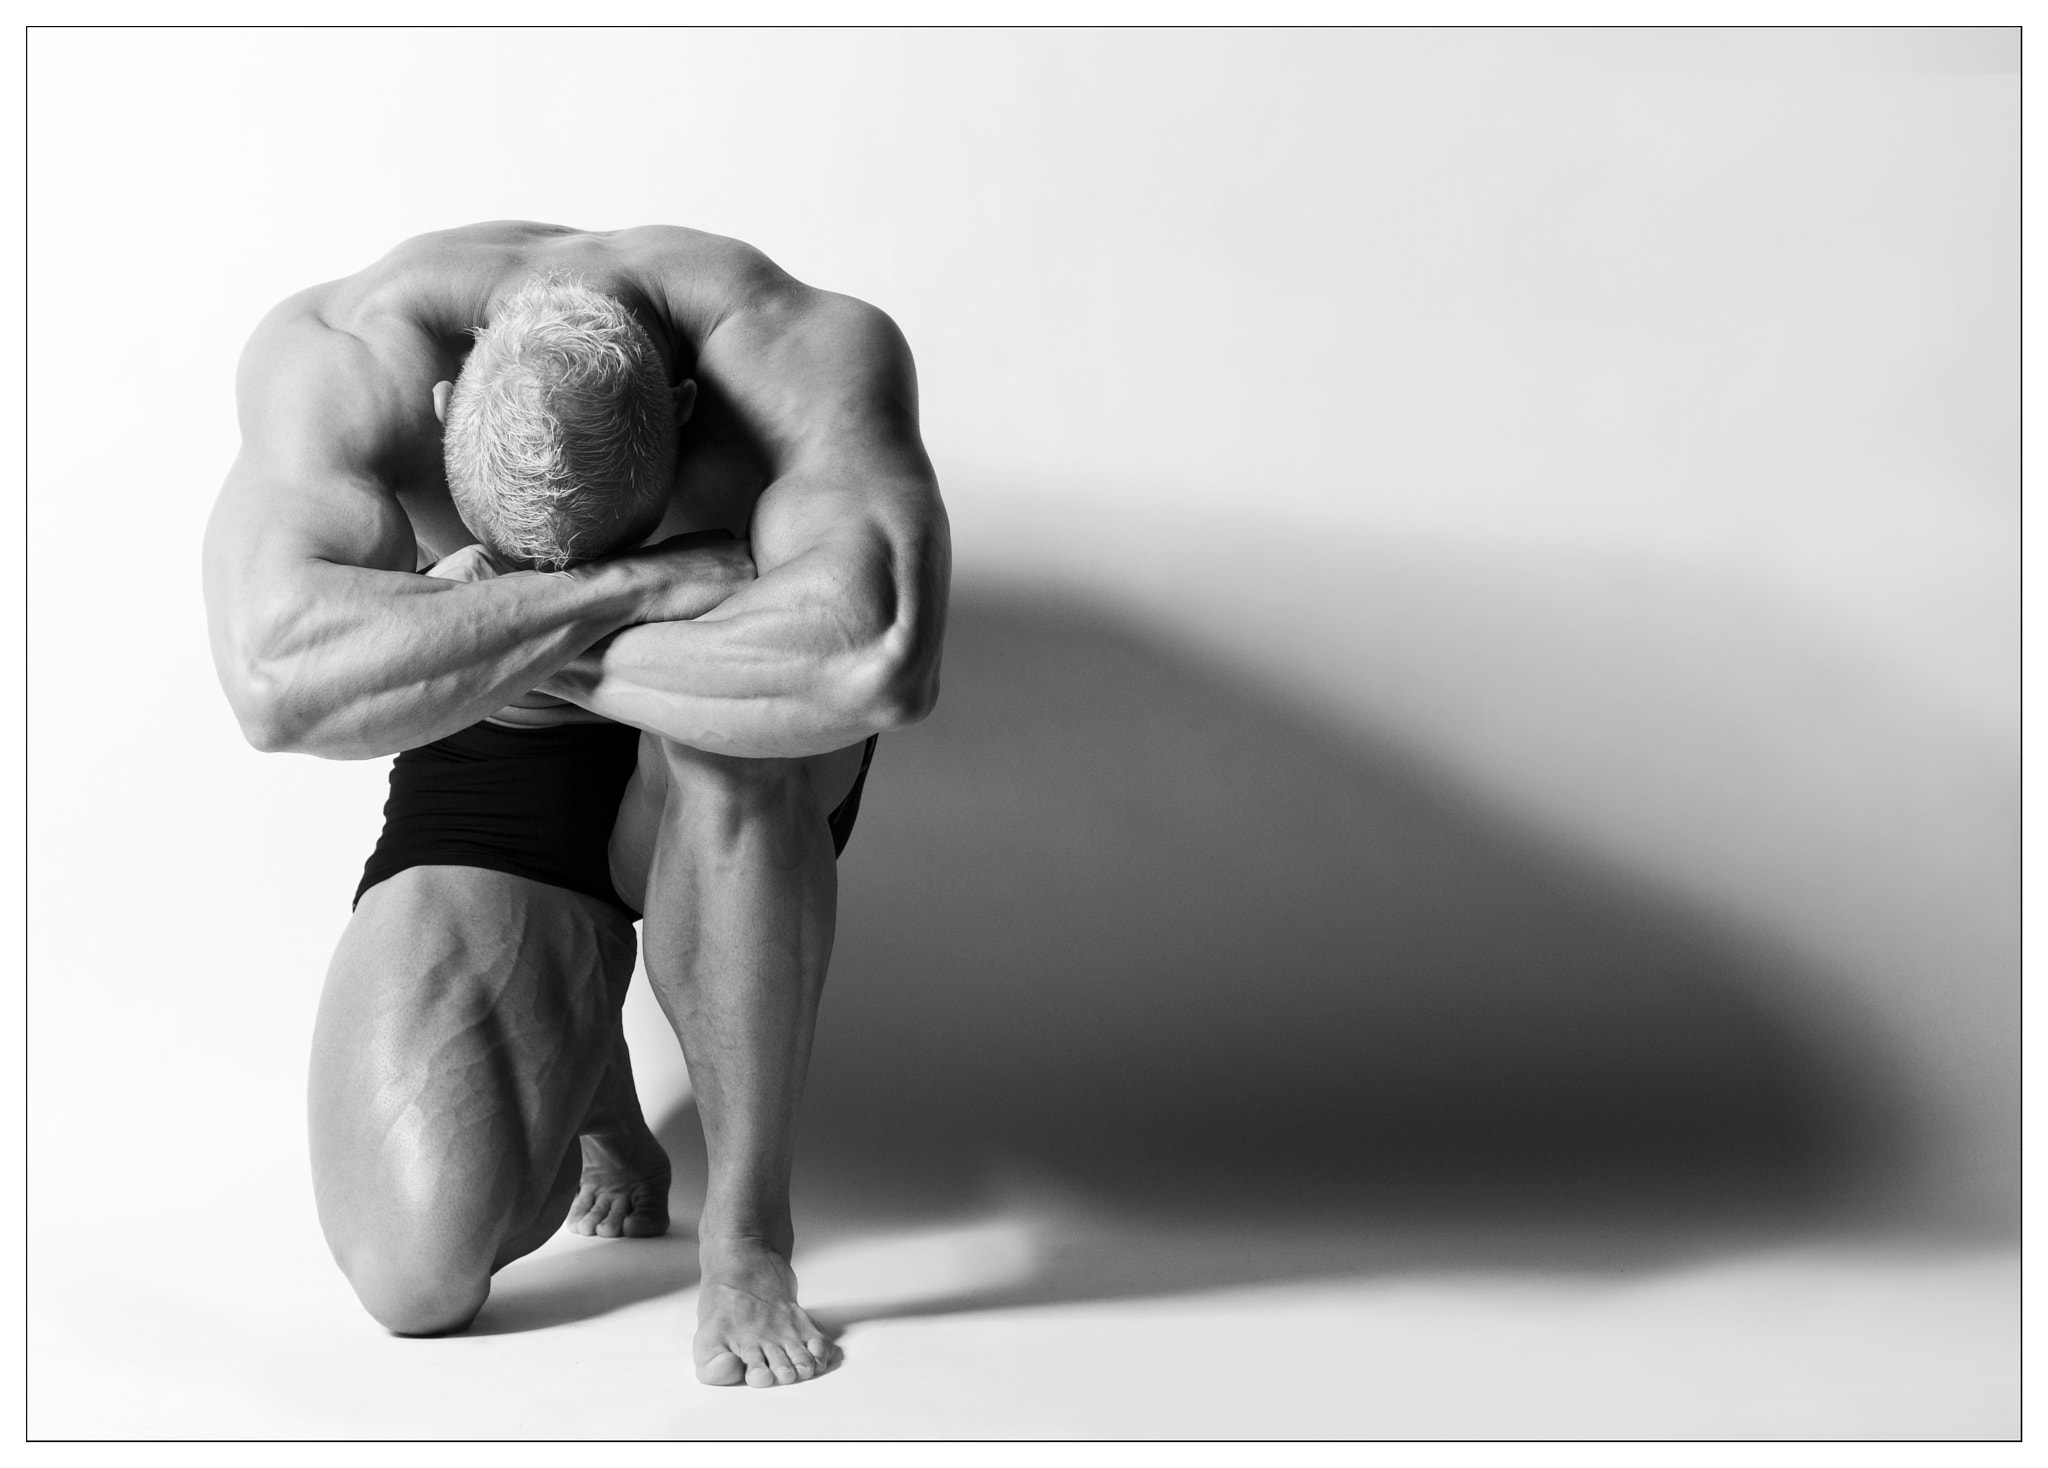 Photograph The Bodybuilder by Gabor Kanovits on 500px